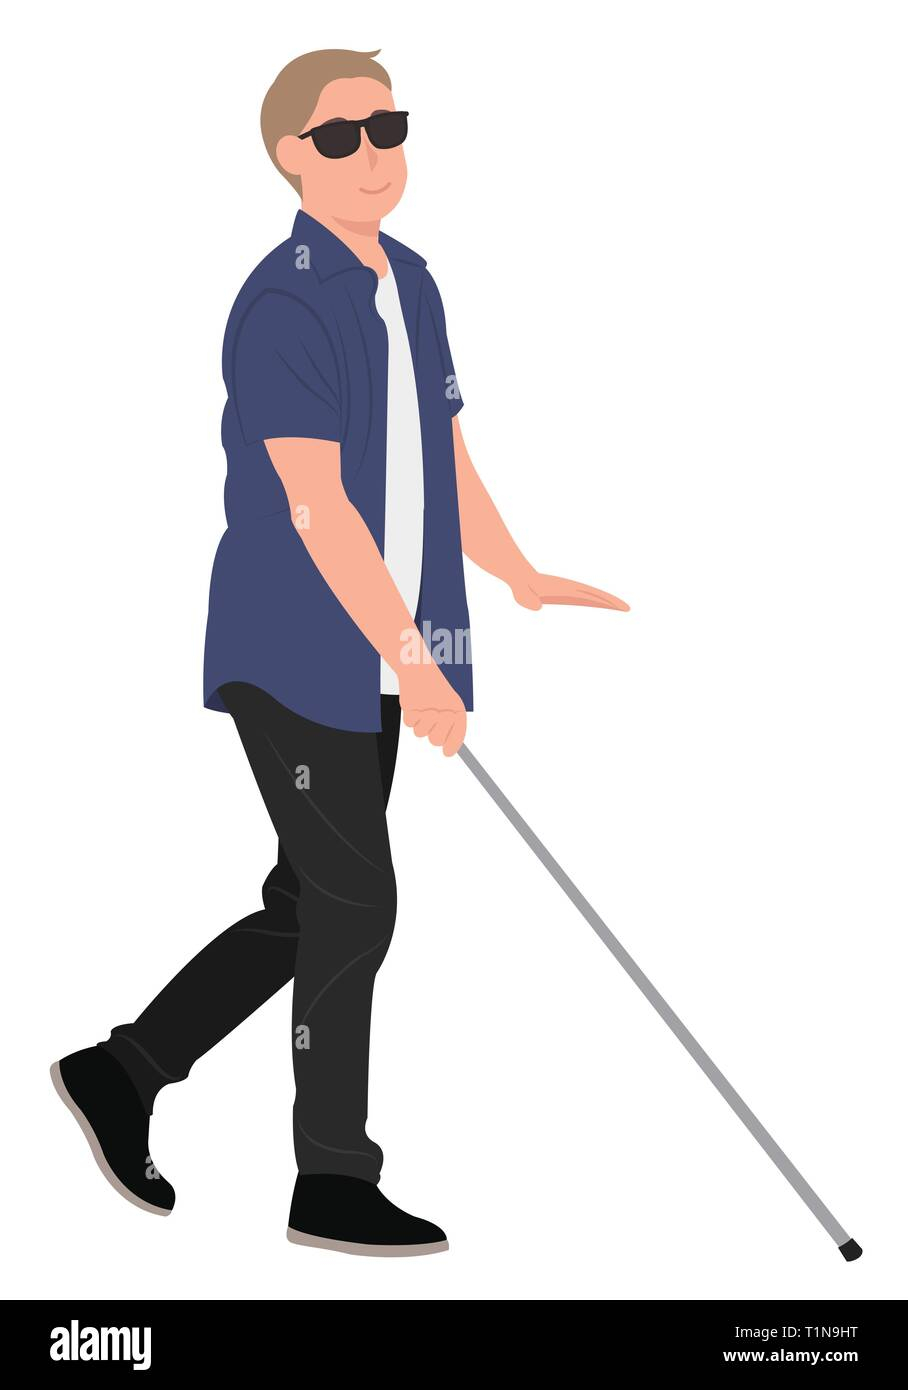 Cartoon People Character Design Blind Young Man Walk With A Walking Cane Ideal For Both Print And Web Design Stock Vector Image Art Alamy